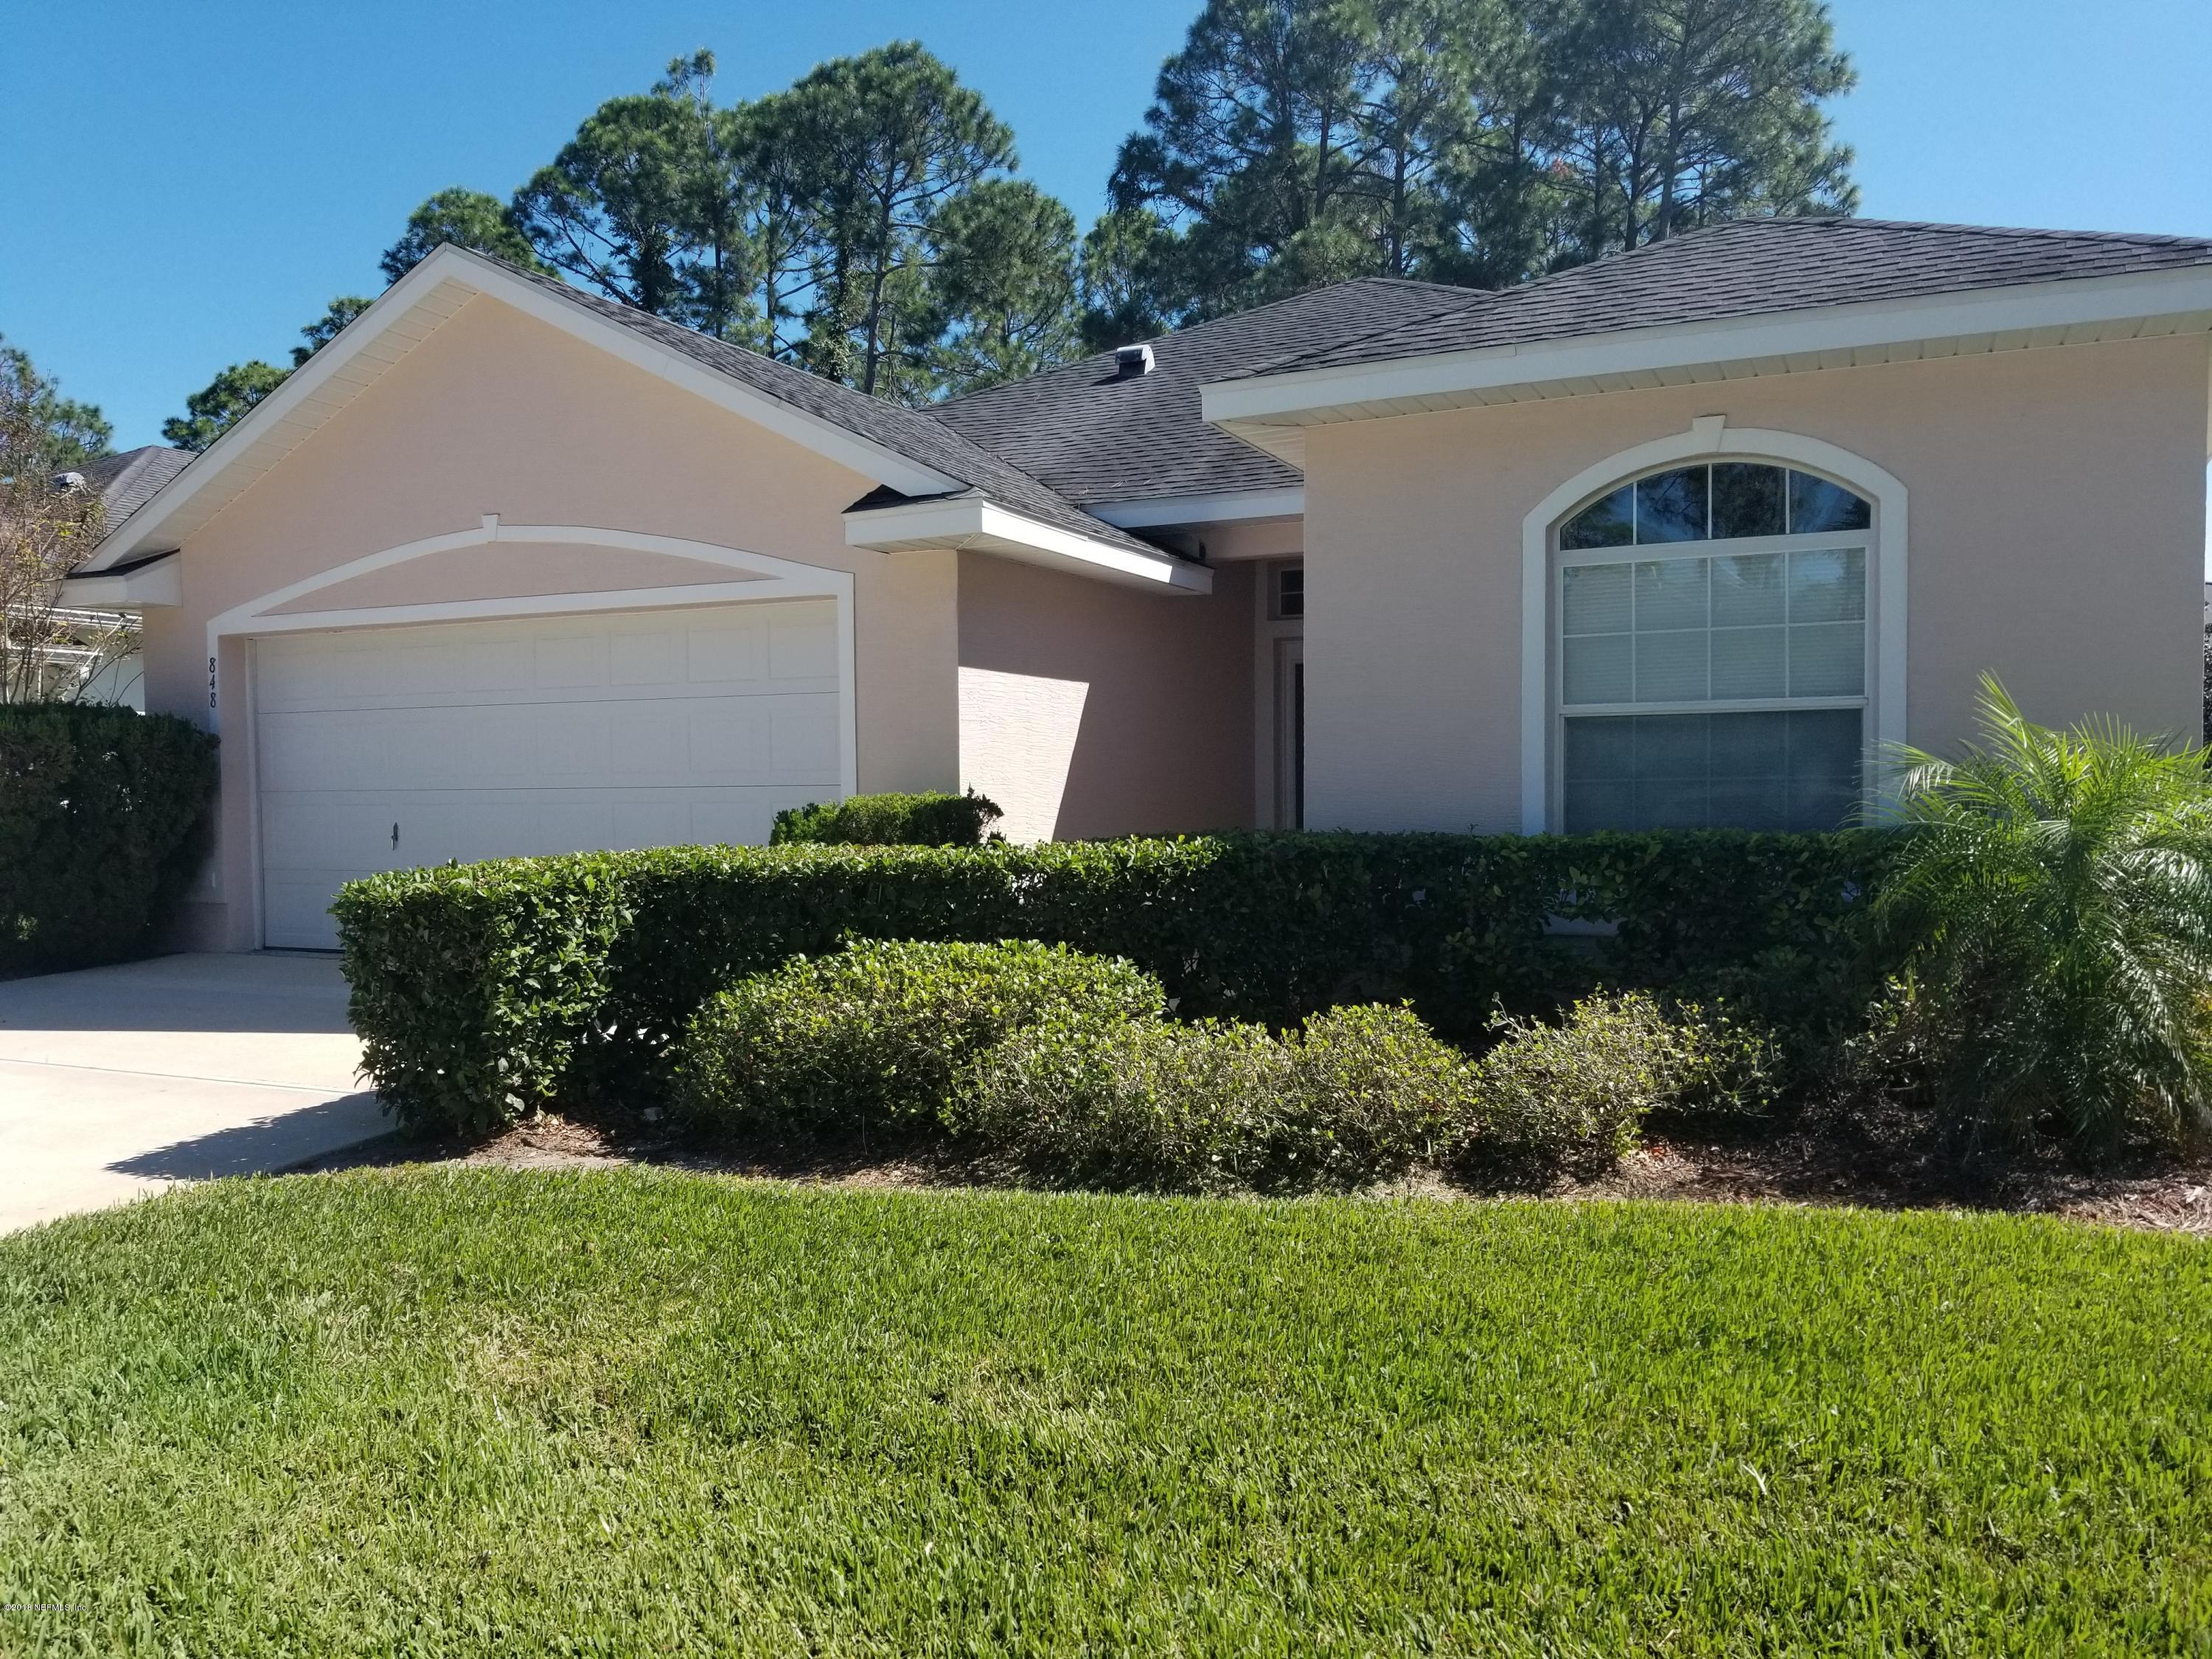 848 CRESTWOOD, ST AUGUSTINE, FLORIDA 32086, 2 Bedrooms Bedrooms, ,2 BathroomsBathrooms,Residential - single family,For sale,CRESTWOOD,962261